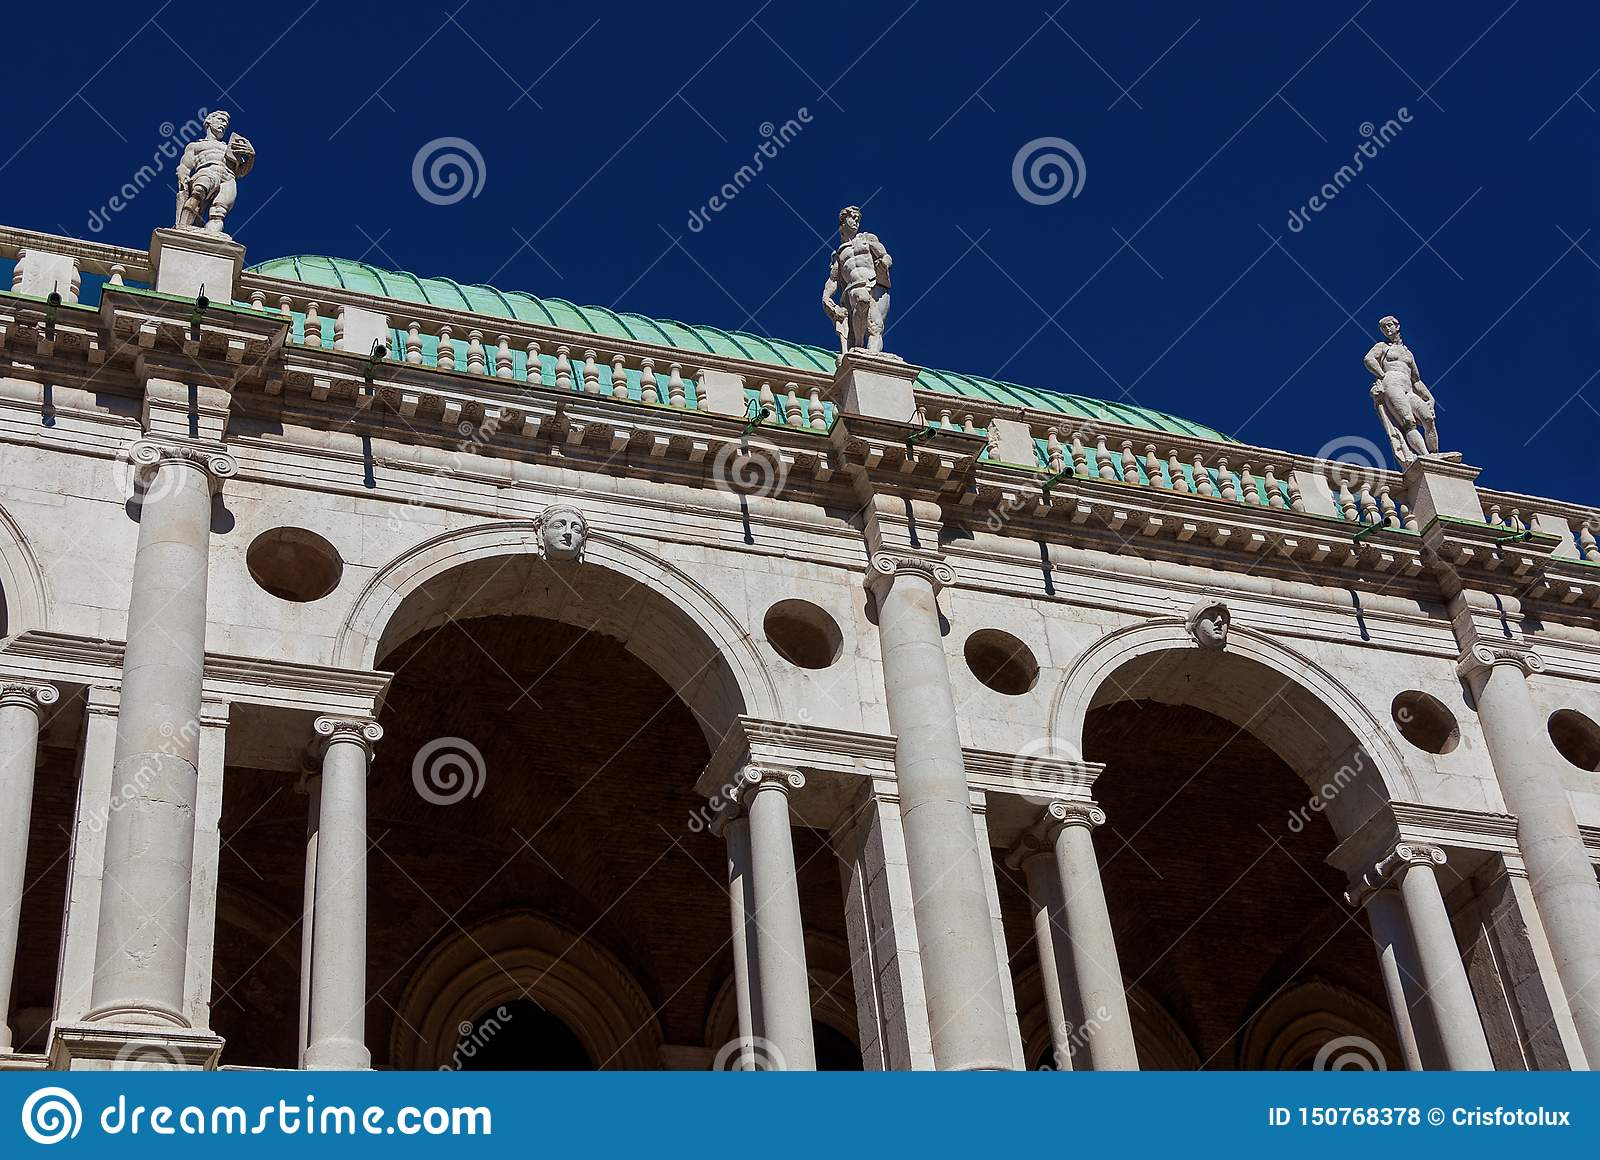 Basilica Palladiana arches and statues with blue sky